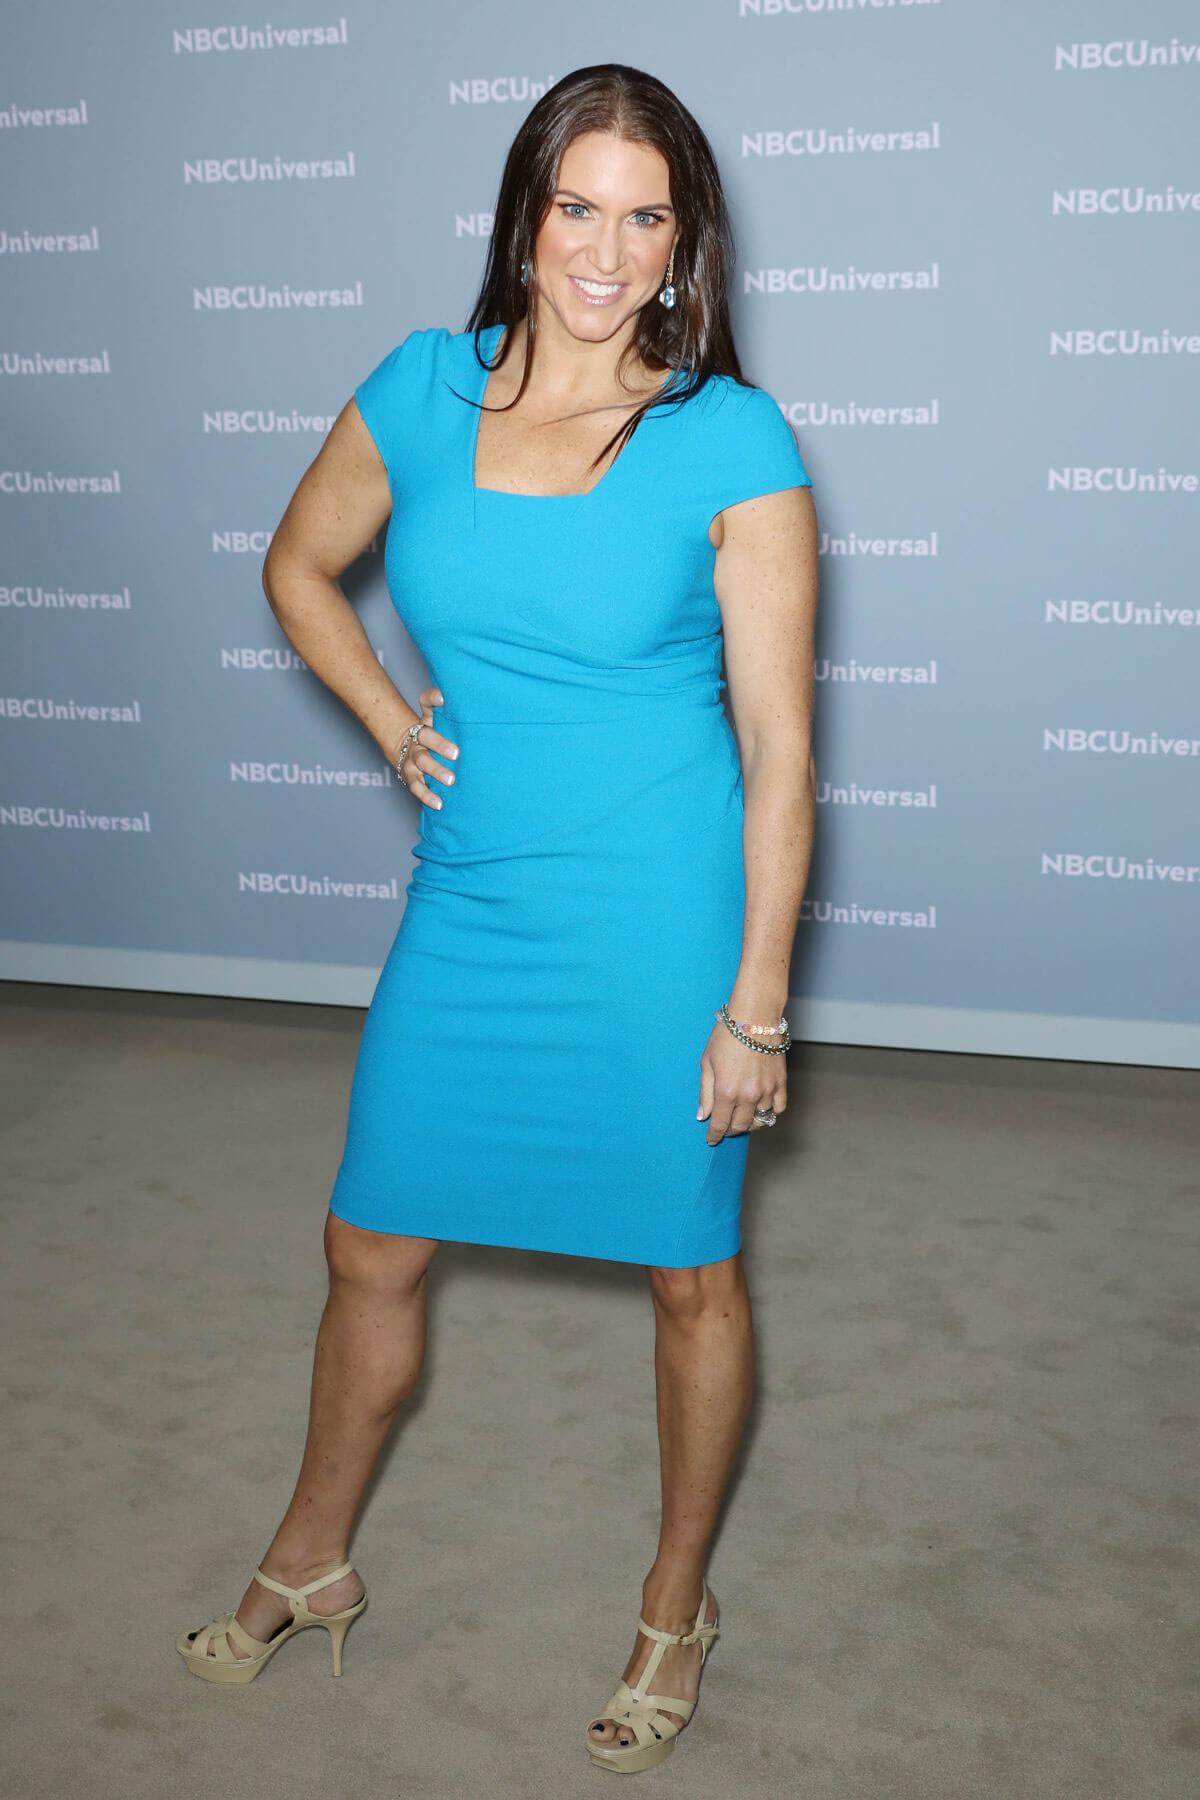 Stephanie McMahon at NBCUniversal Upfront Presentation in New York 2018/05/14 1